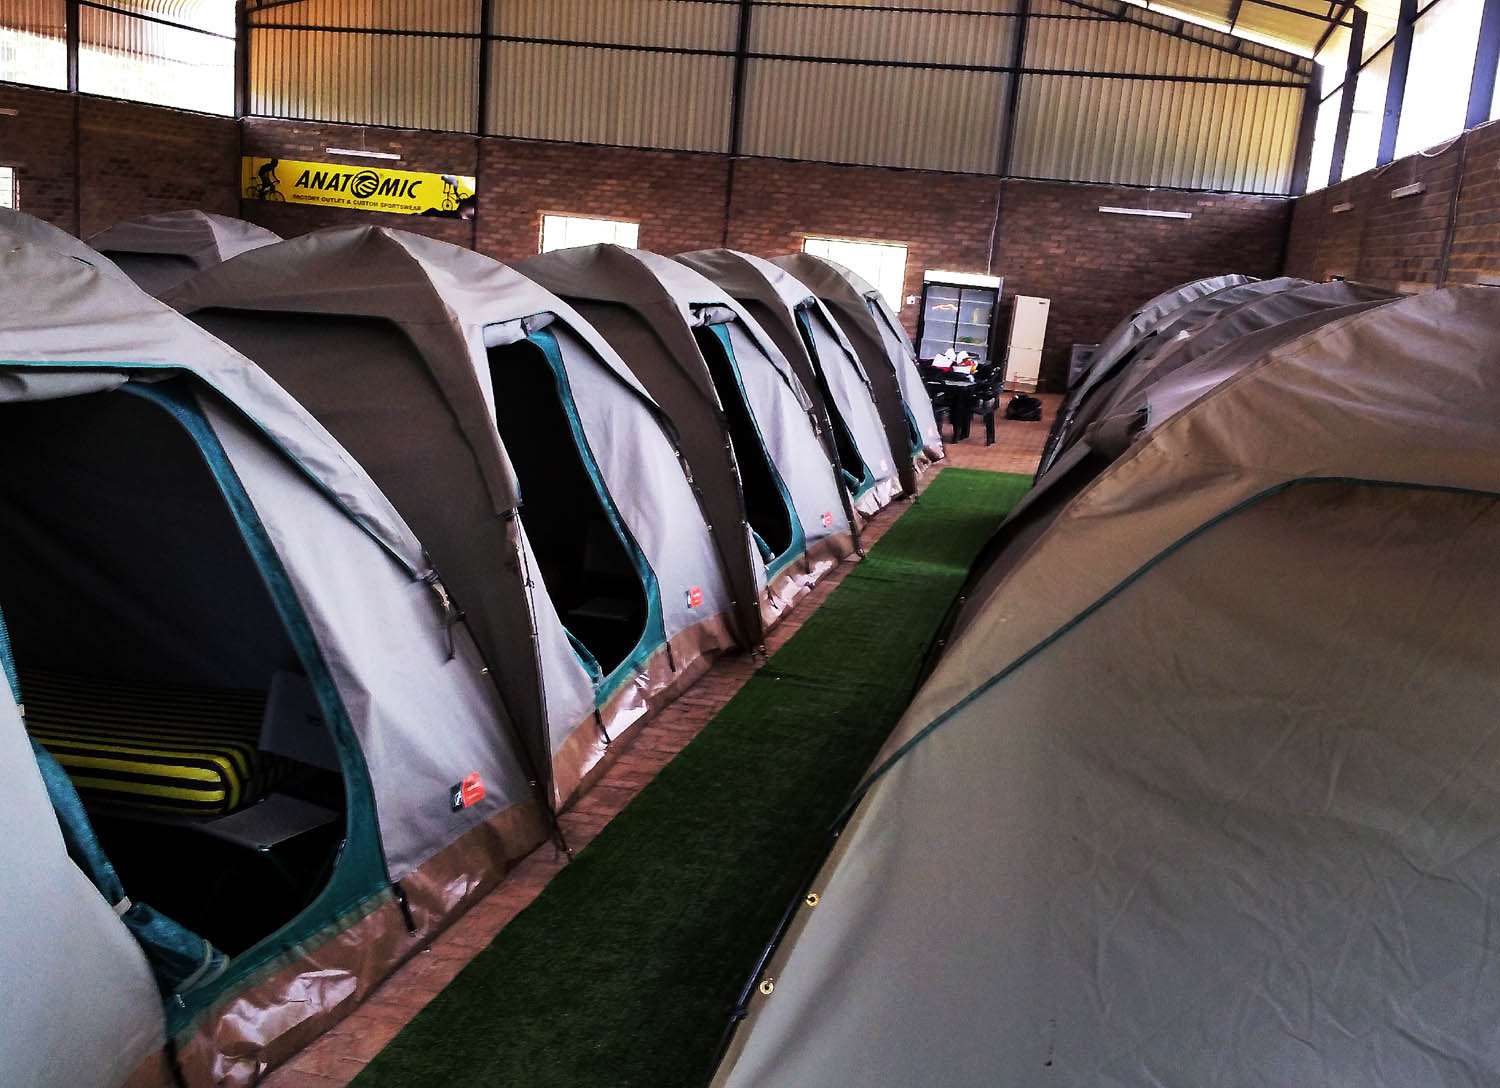 17 x 9 sqm roofed tents